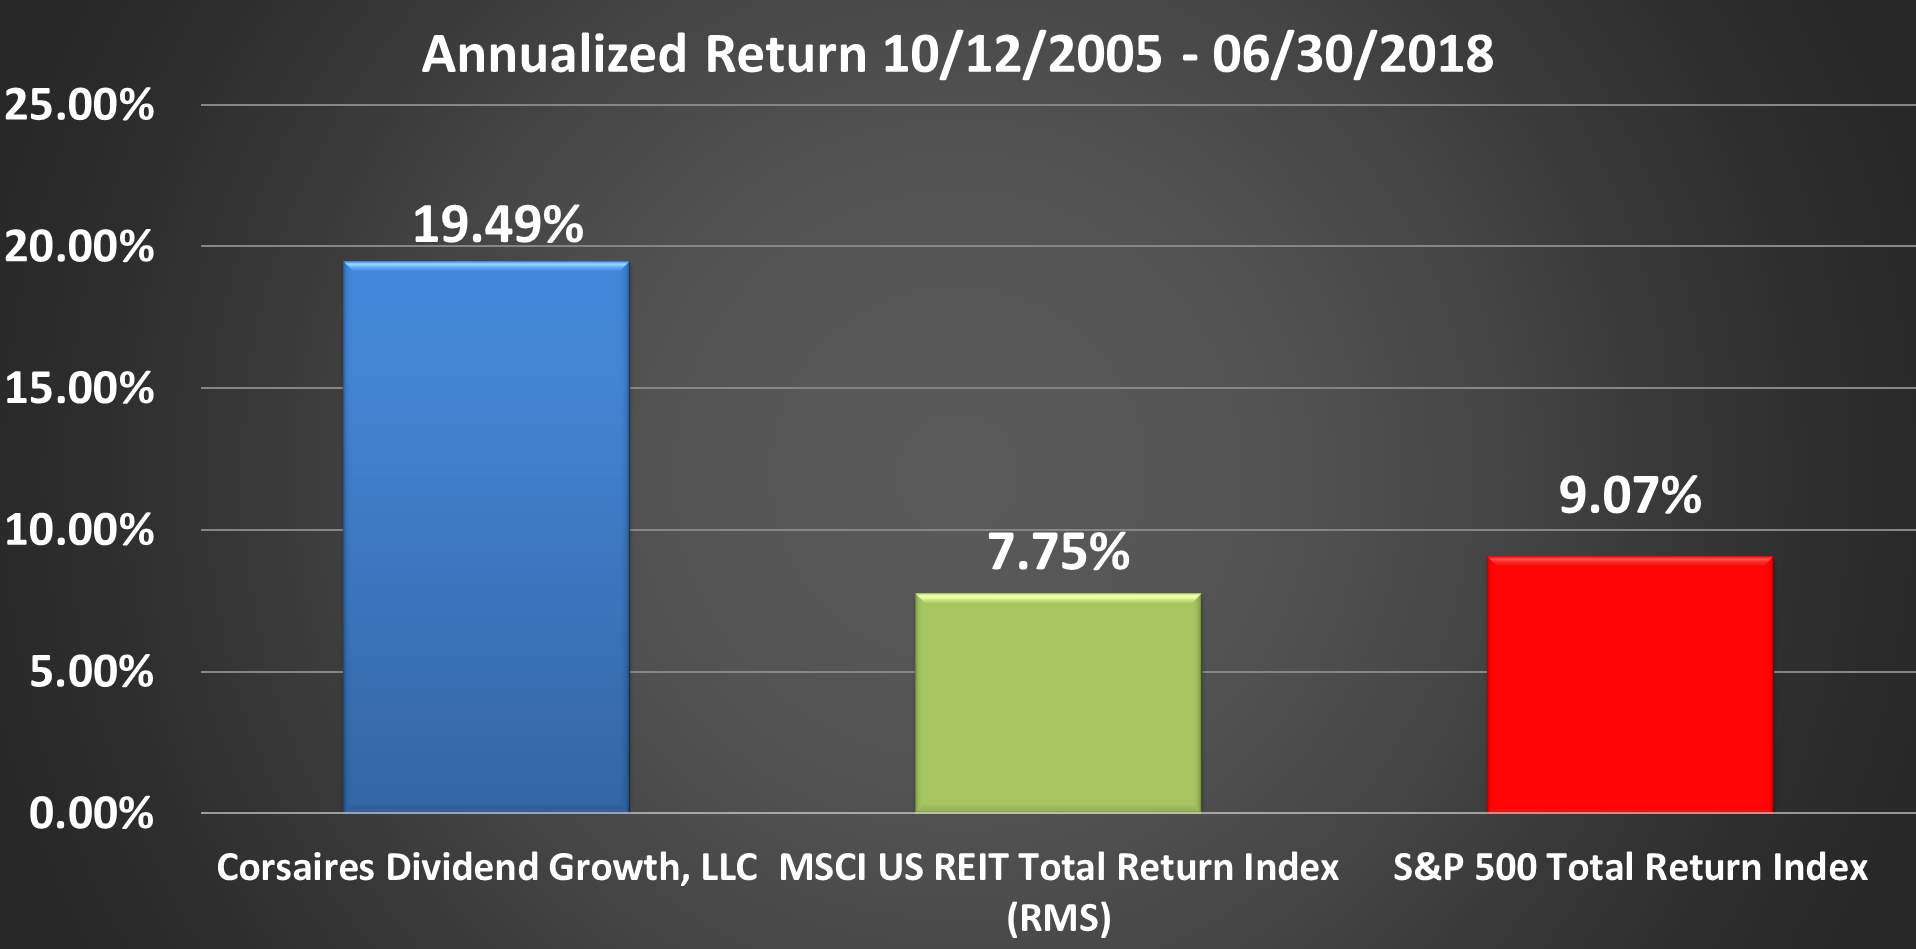 CDG Rate of Return Graphic Through Q2 2018 Annualized